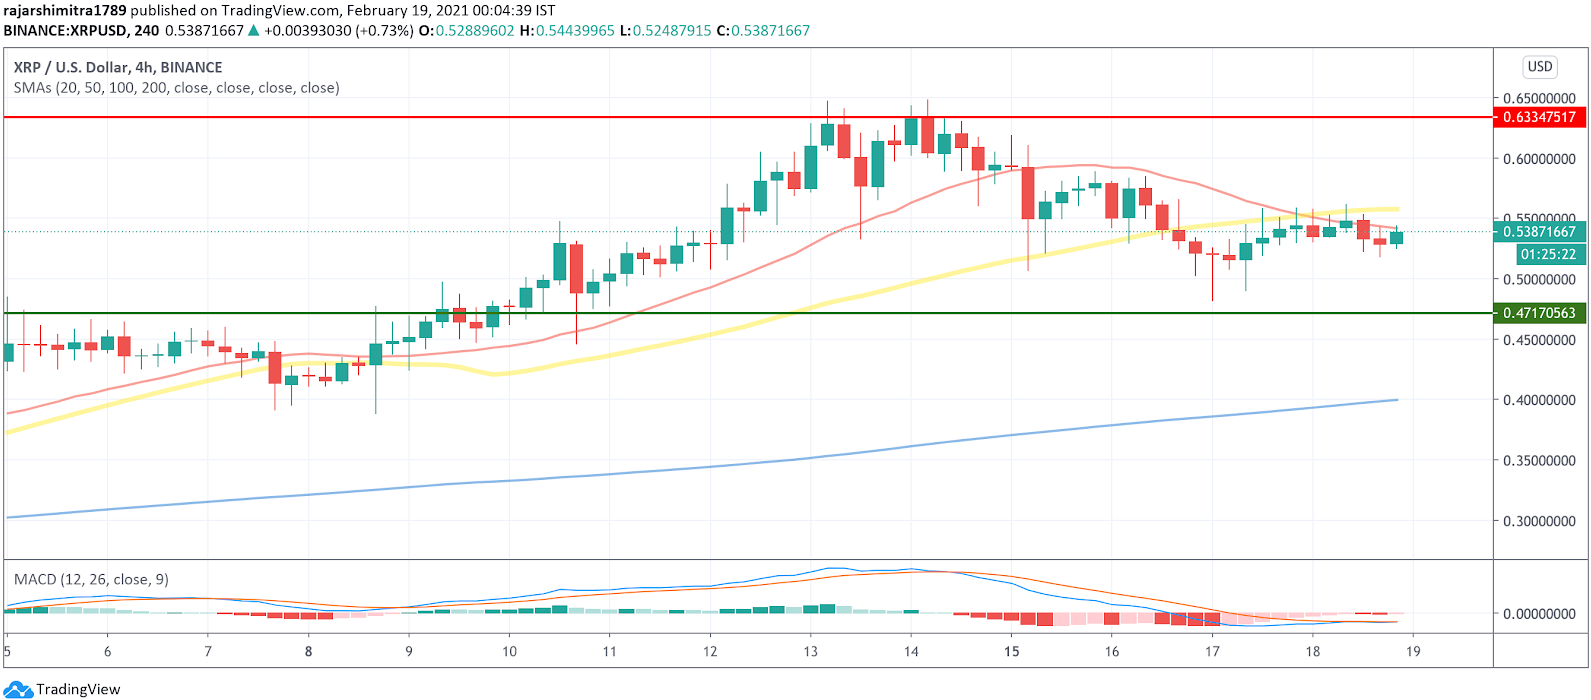 xrp/usd 4-hour chart 021921